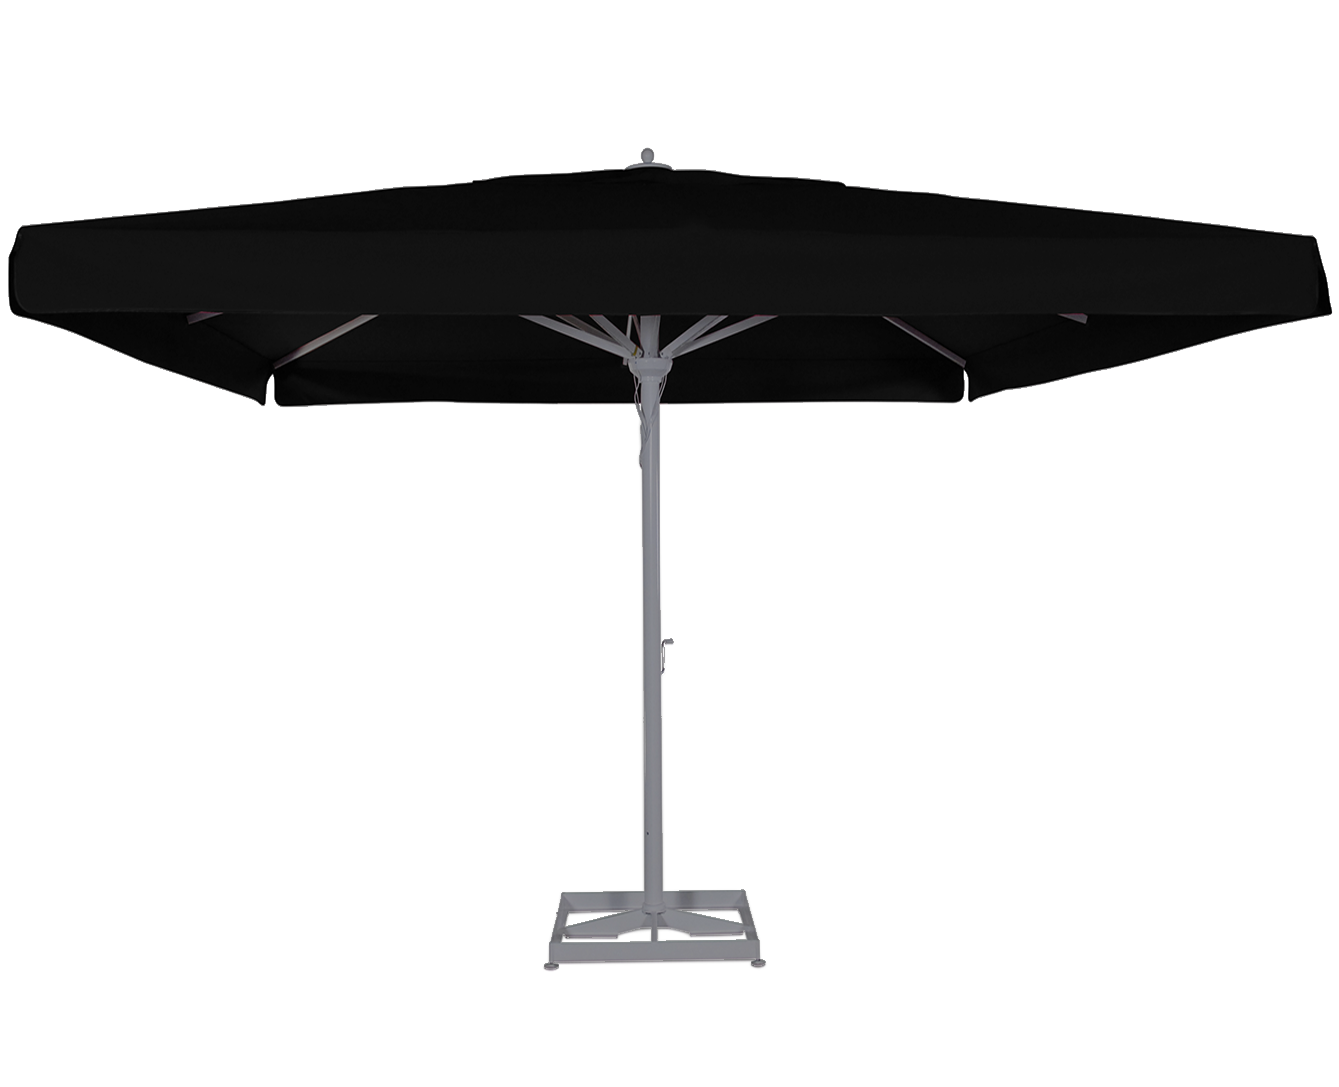 maestro prestige solero grand parasol mat central en alu 4x4m 3x4m terrasse restaurant. Black Bedroom Furniture Sets. Home Design Ideas